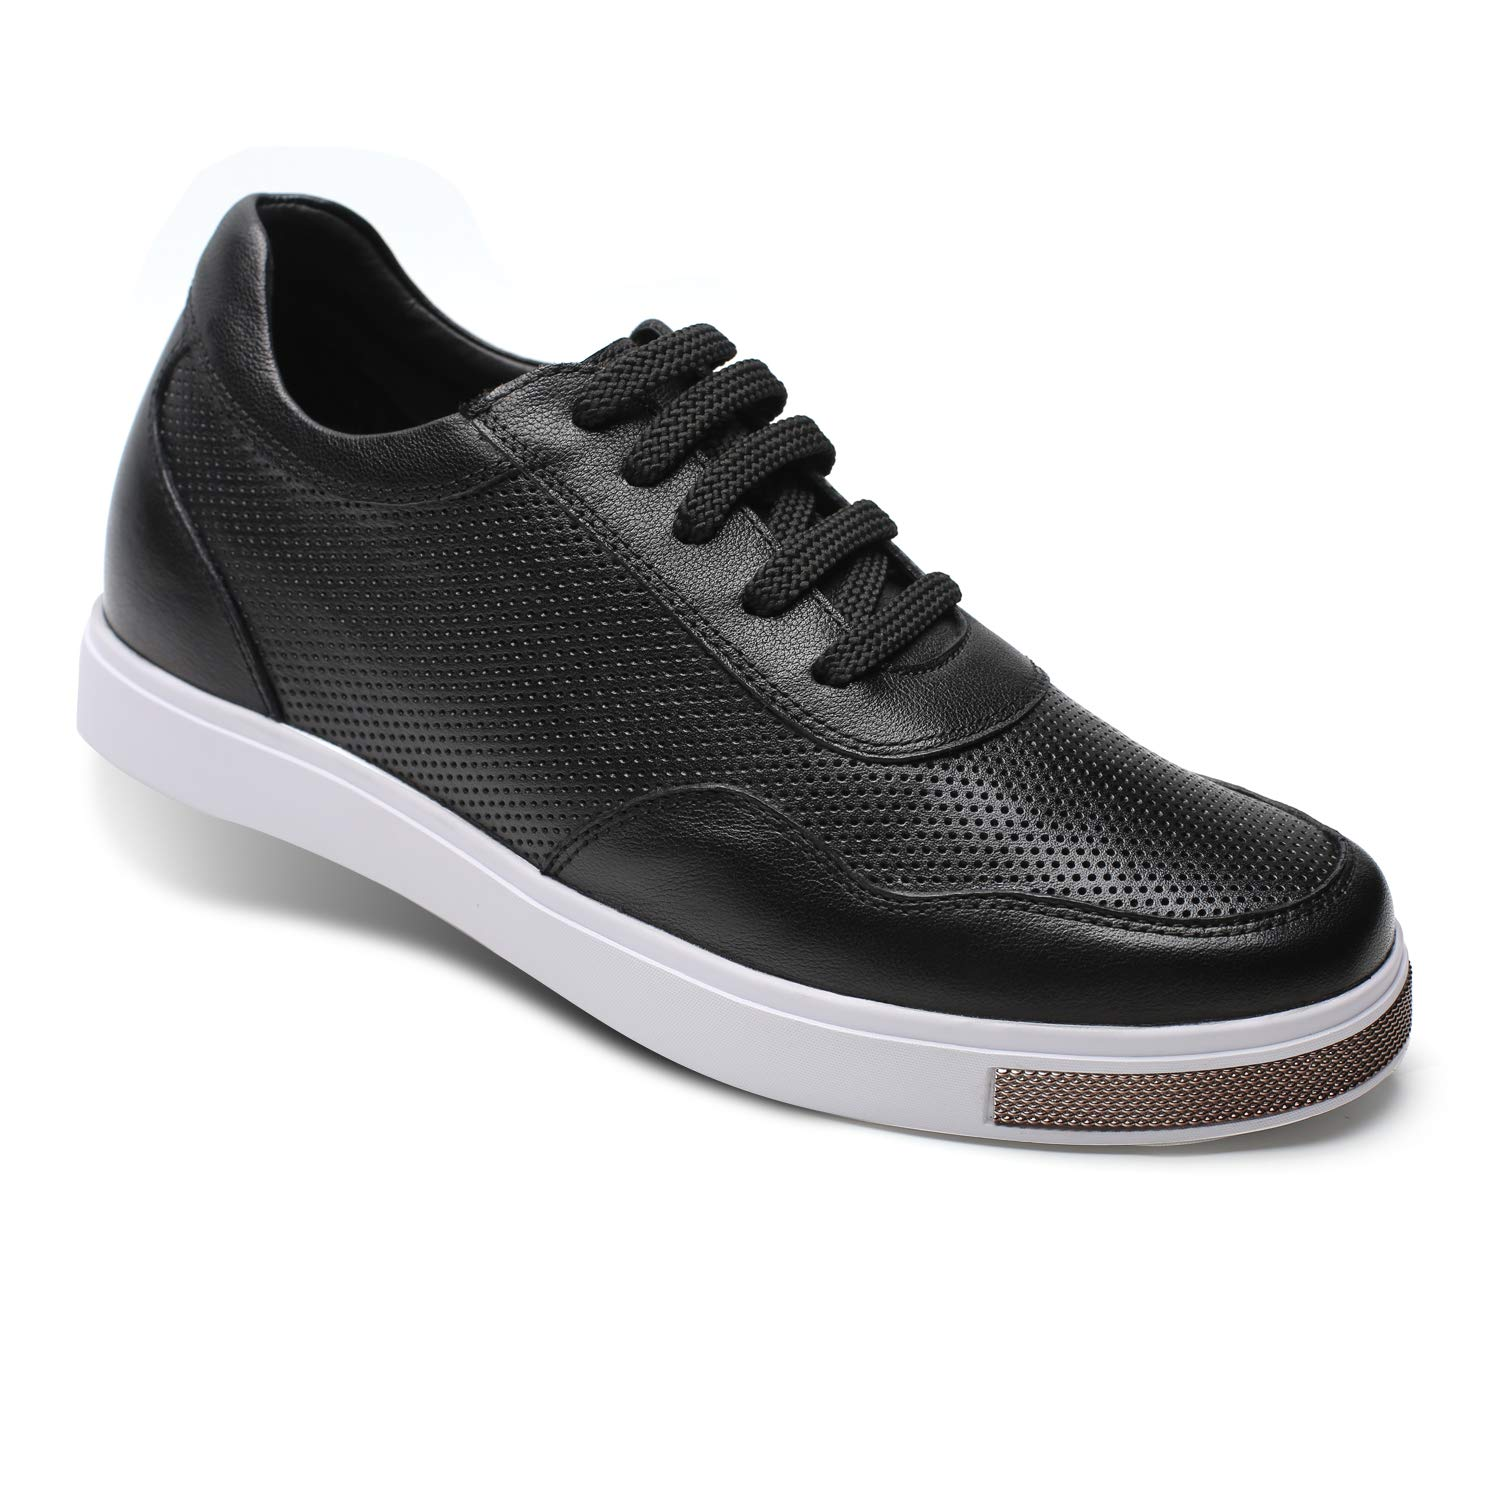 CHAMARIPA Mens Invisible Height Increasing Elevator Shoes-Breathable Mesh Leather Sneakers-2.36 Inches Taller H71C26K175D